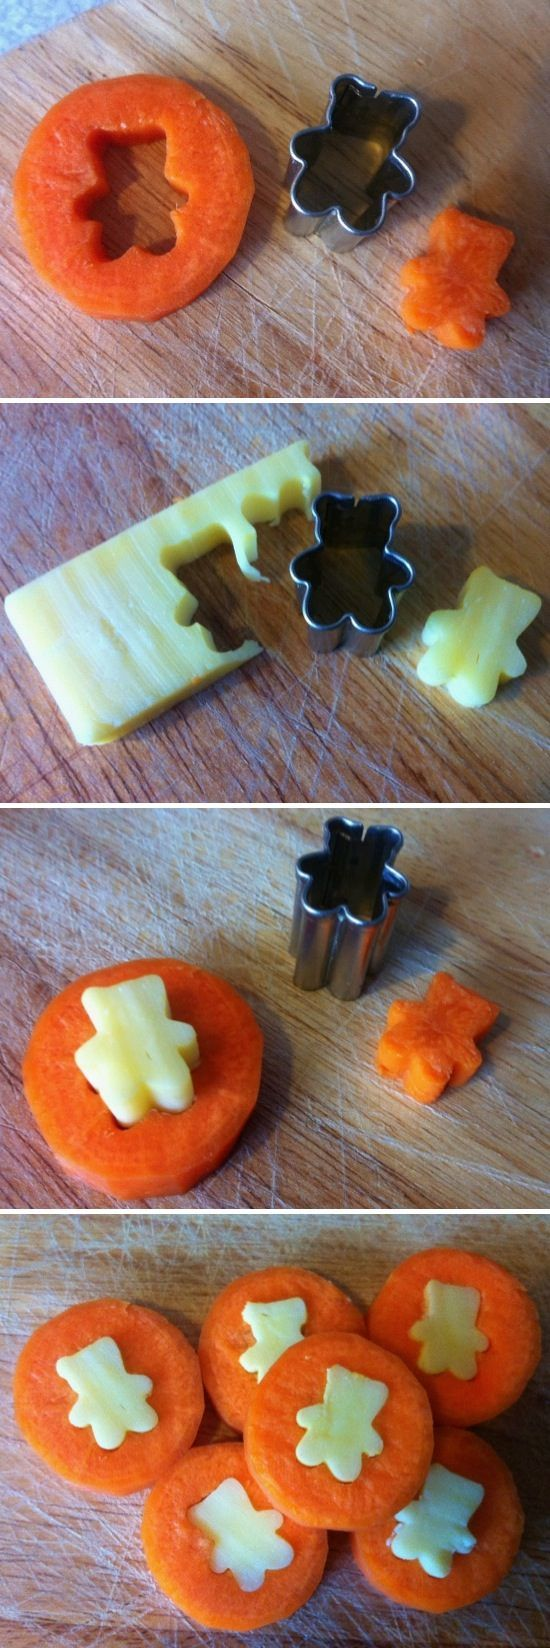 Fun Food Tutorial: Cheese and Carrot 'Coins'